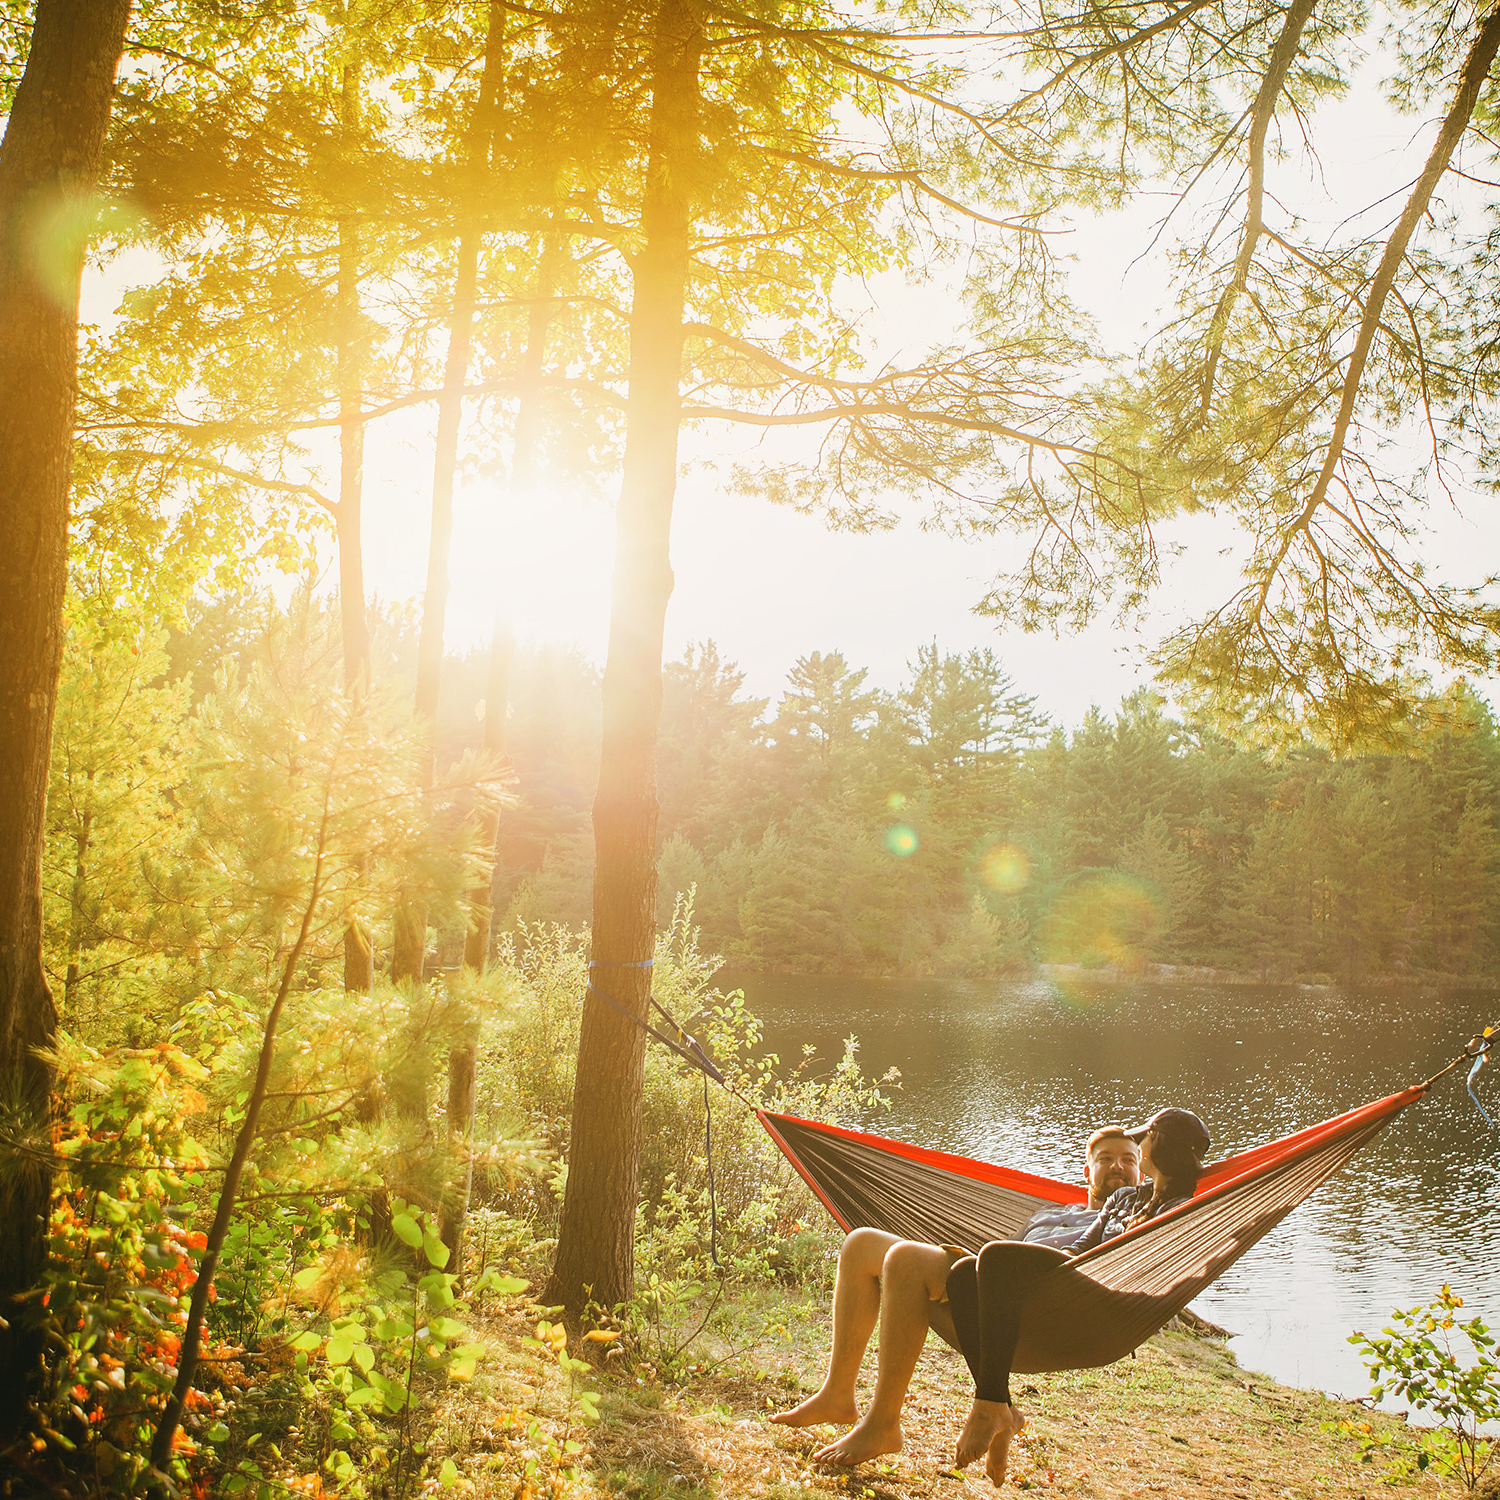 Young_Couple_Hammock_Woods_Midwestern_Financial_Fiduciary_Advisors.jpg